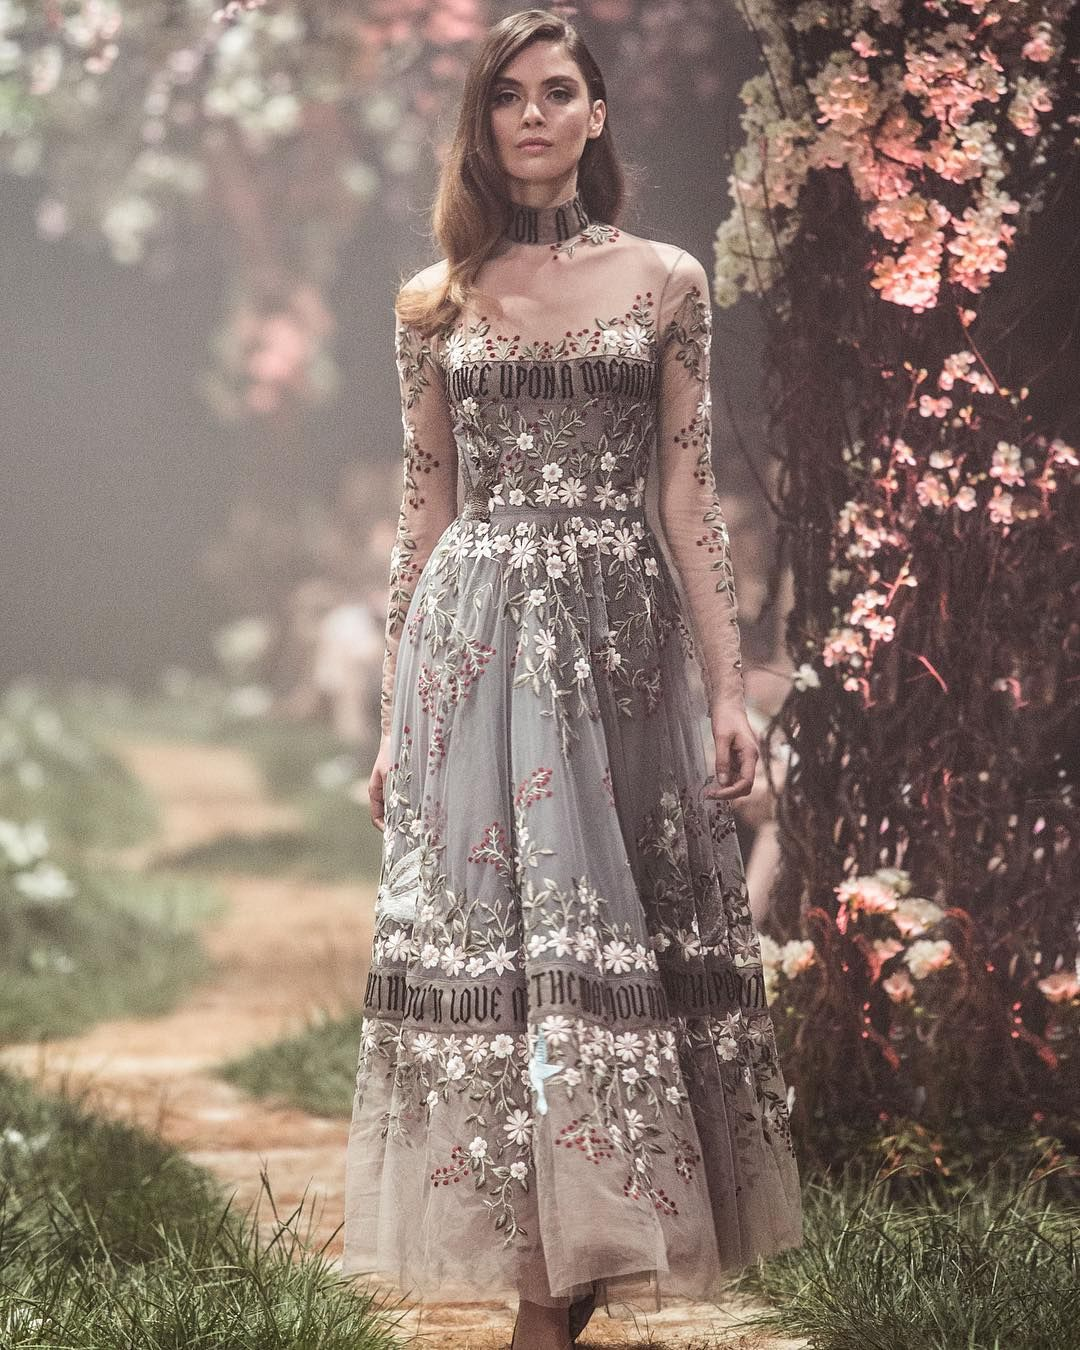 b68a2adf069 Australian couture label Paolo Sebastian has launched a dazzling Disney  fairytale-inspired collection for Spring